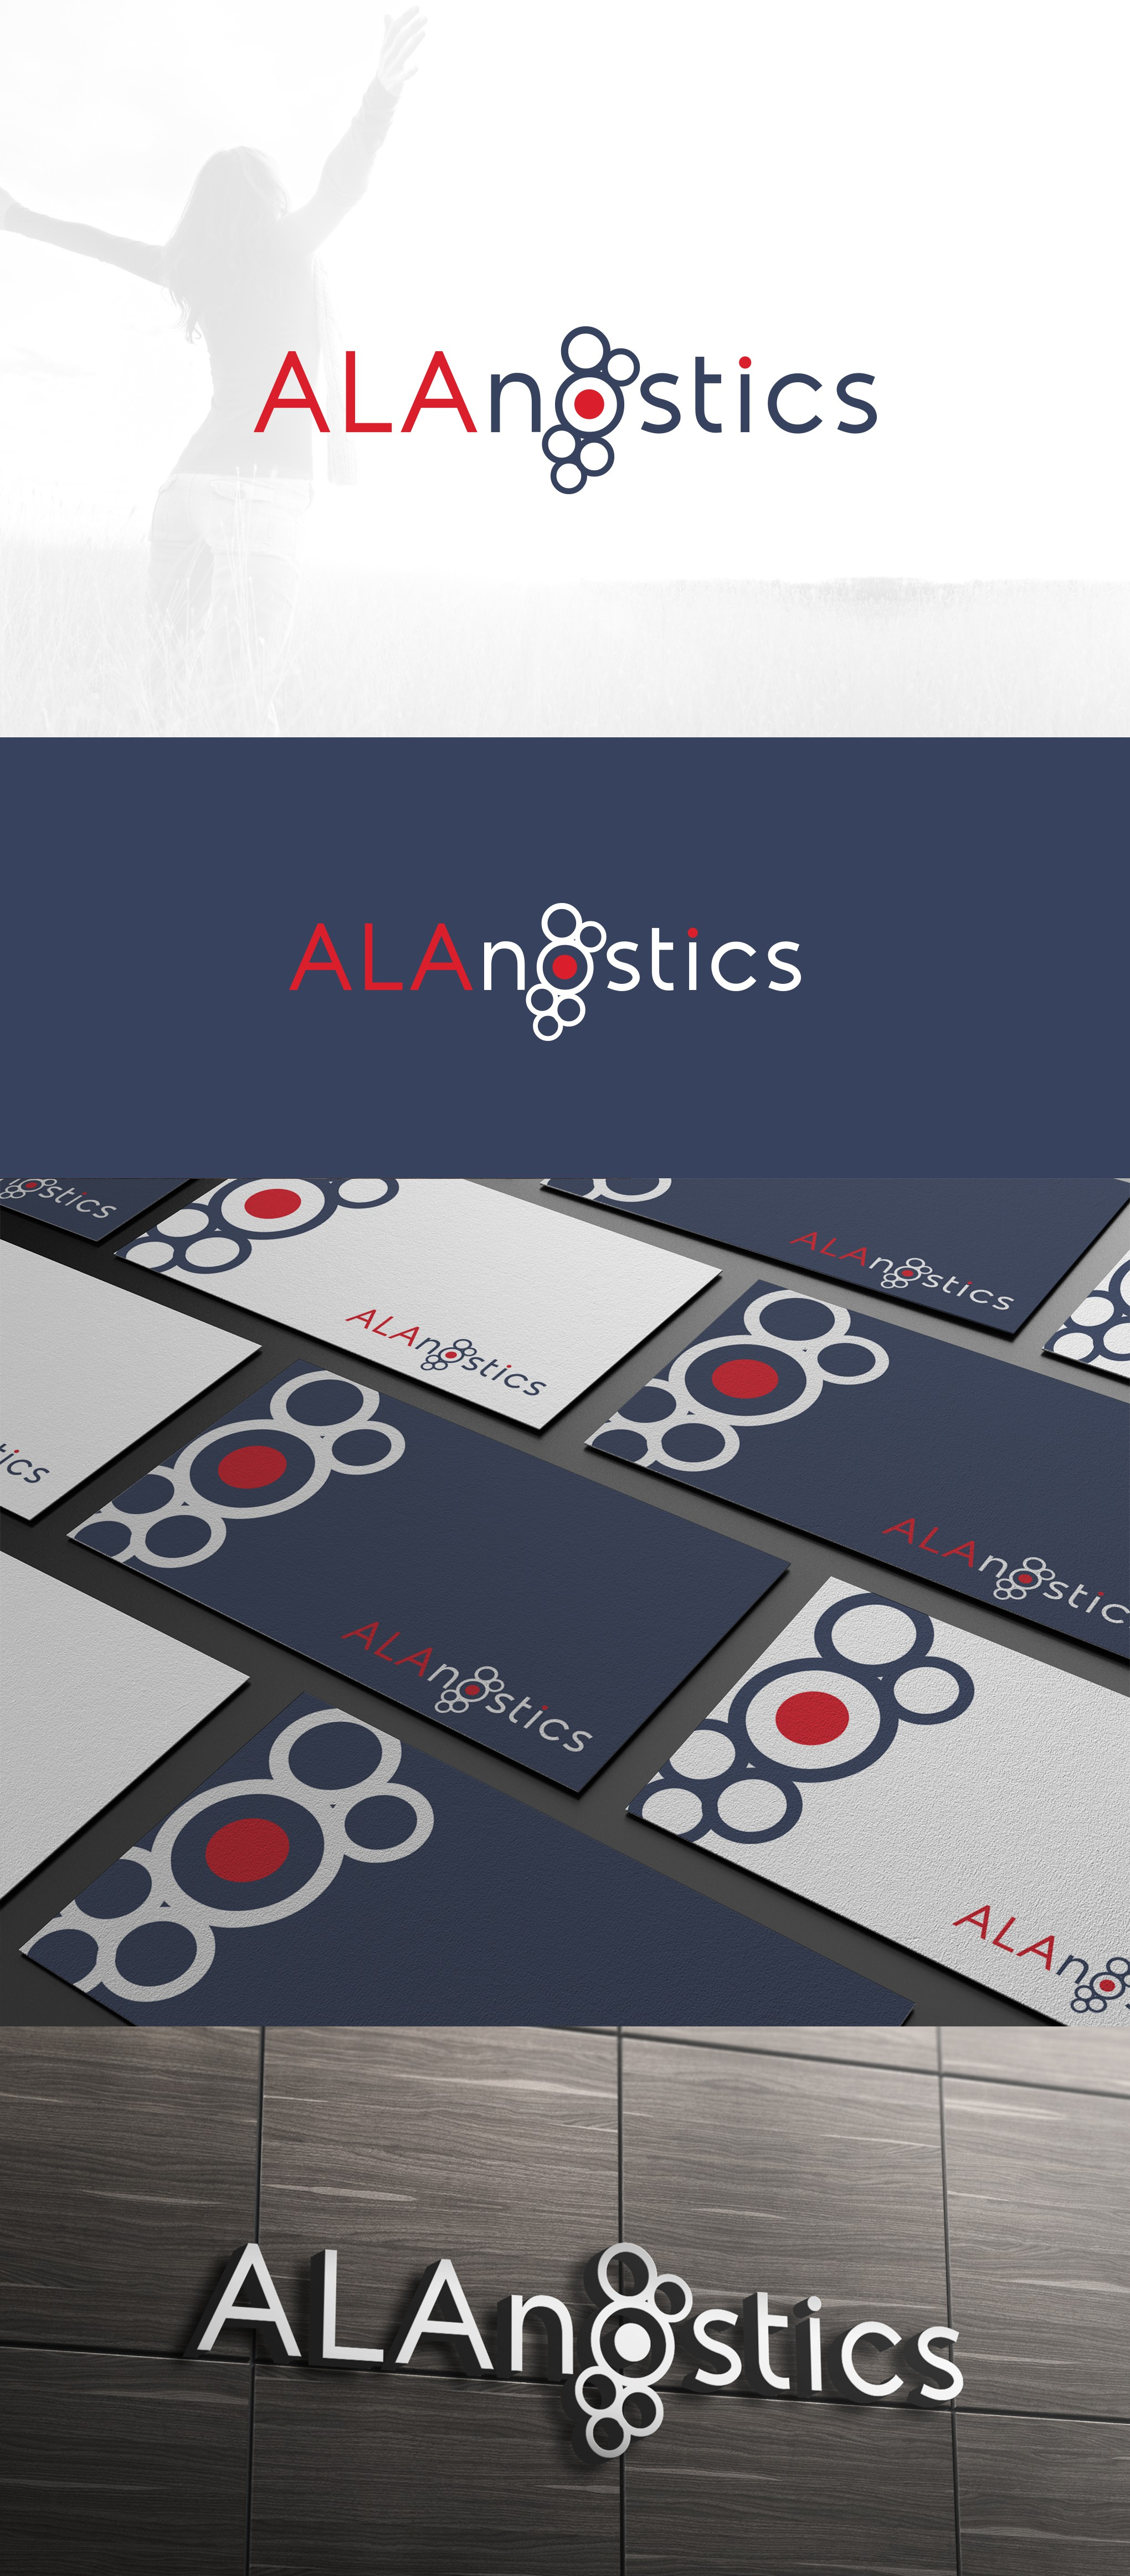 Cancer therapy company ALAnostics need professional new logo.